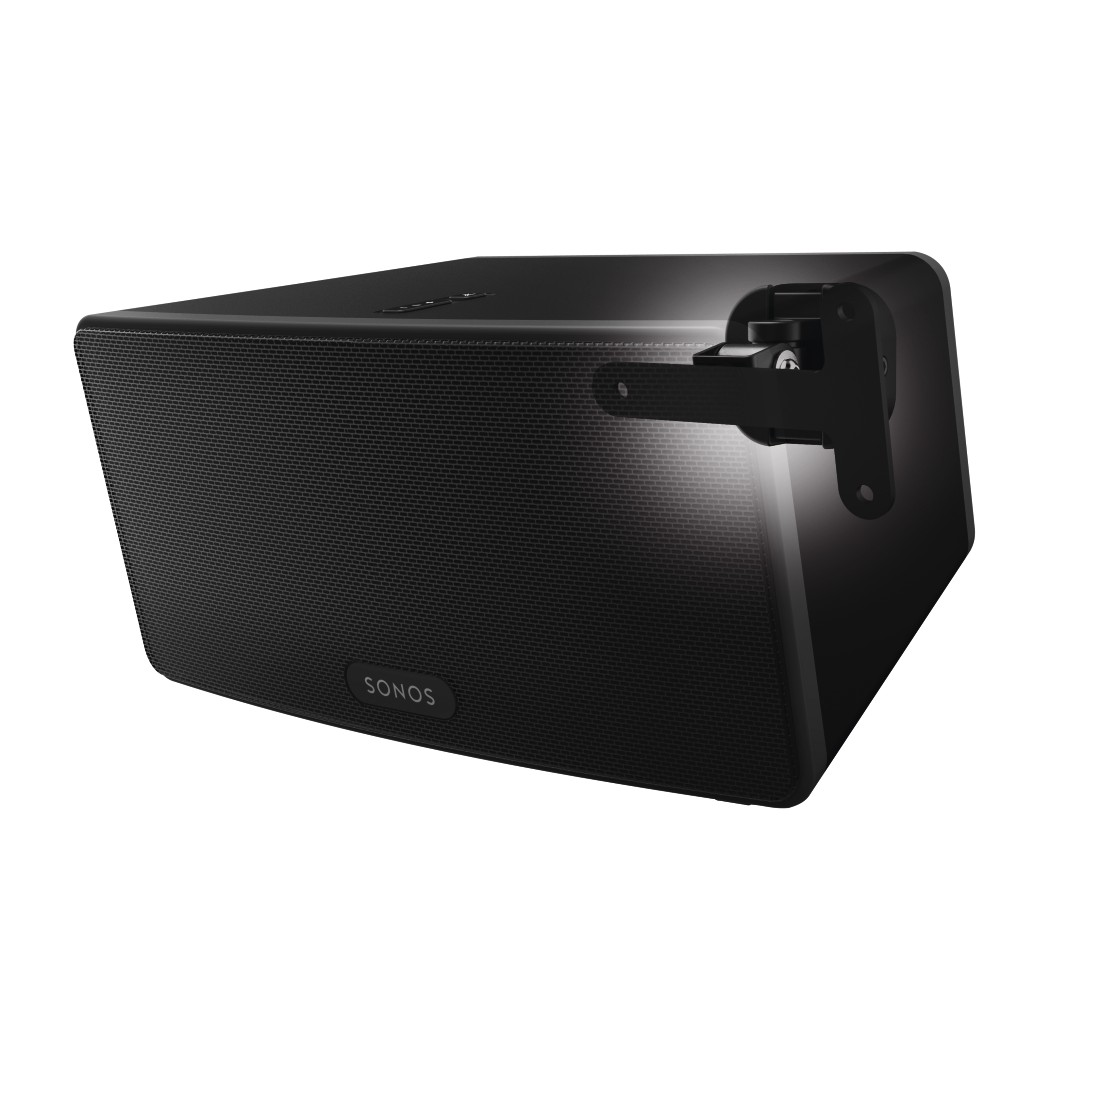 awx2 High-Res Appliance 2 - Hama, Wall Mount for Sonos PLAY:3, full motion, black